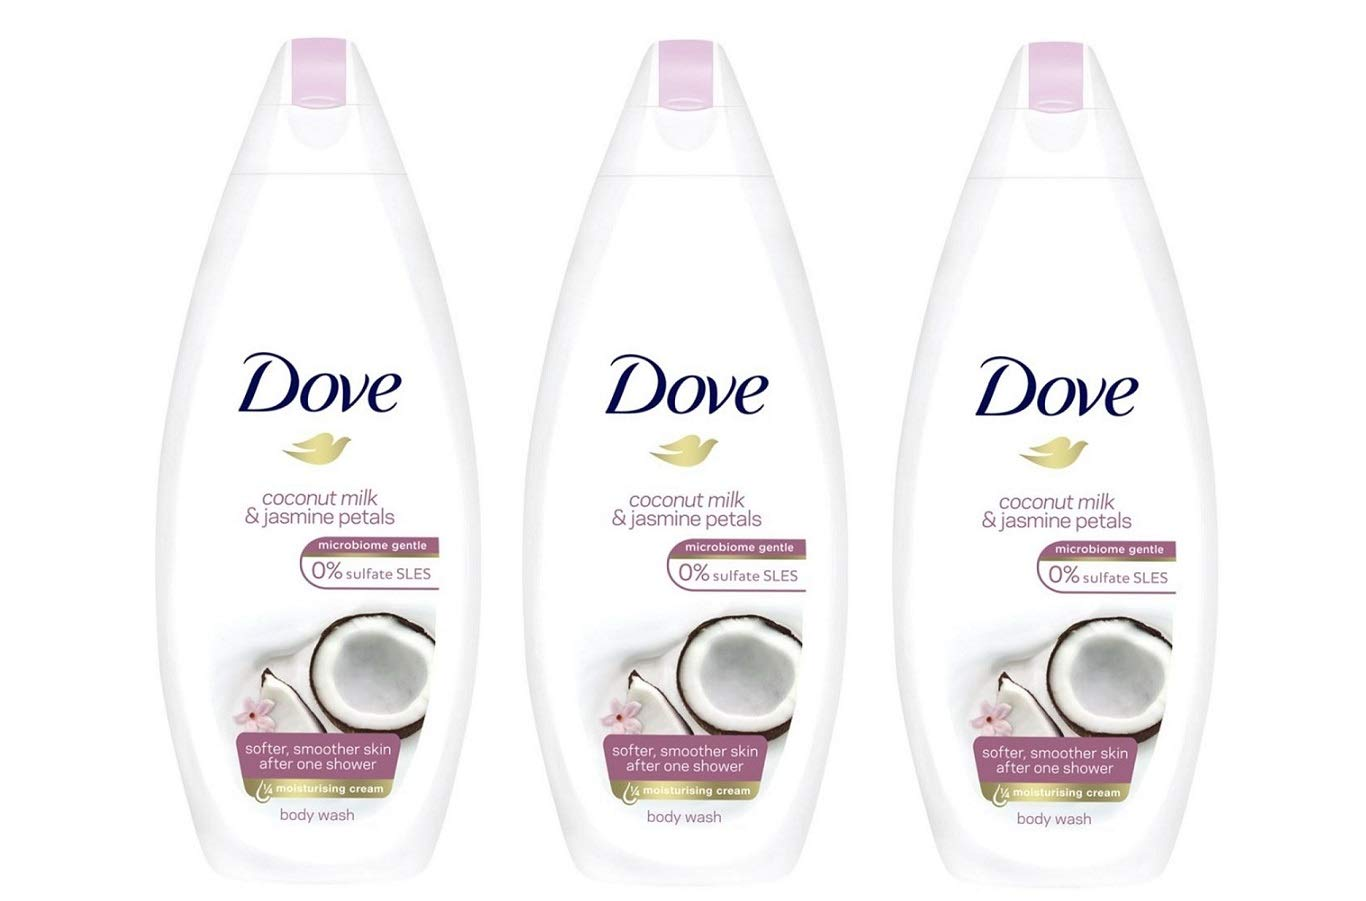 Dove Purely Pampering Coconut Milk With Jasmine Petals Body Wash 500ml 16 9oz 3 Pack Buy Online In Kuwait Unknown Products In Kuwait See Prices Reviews And Free Delivery Over Kd 20 000 Desertcart